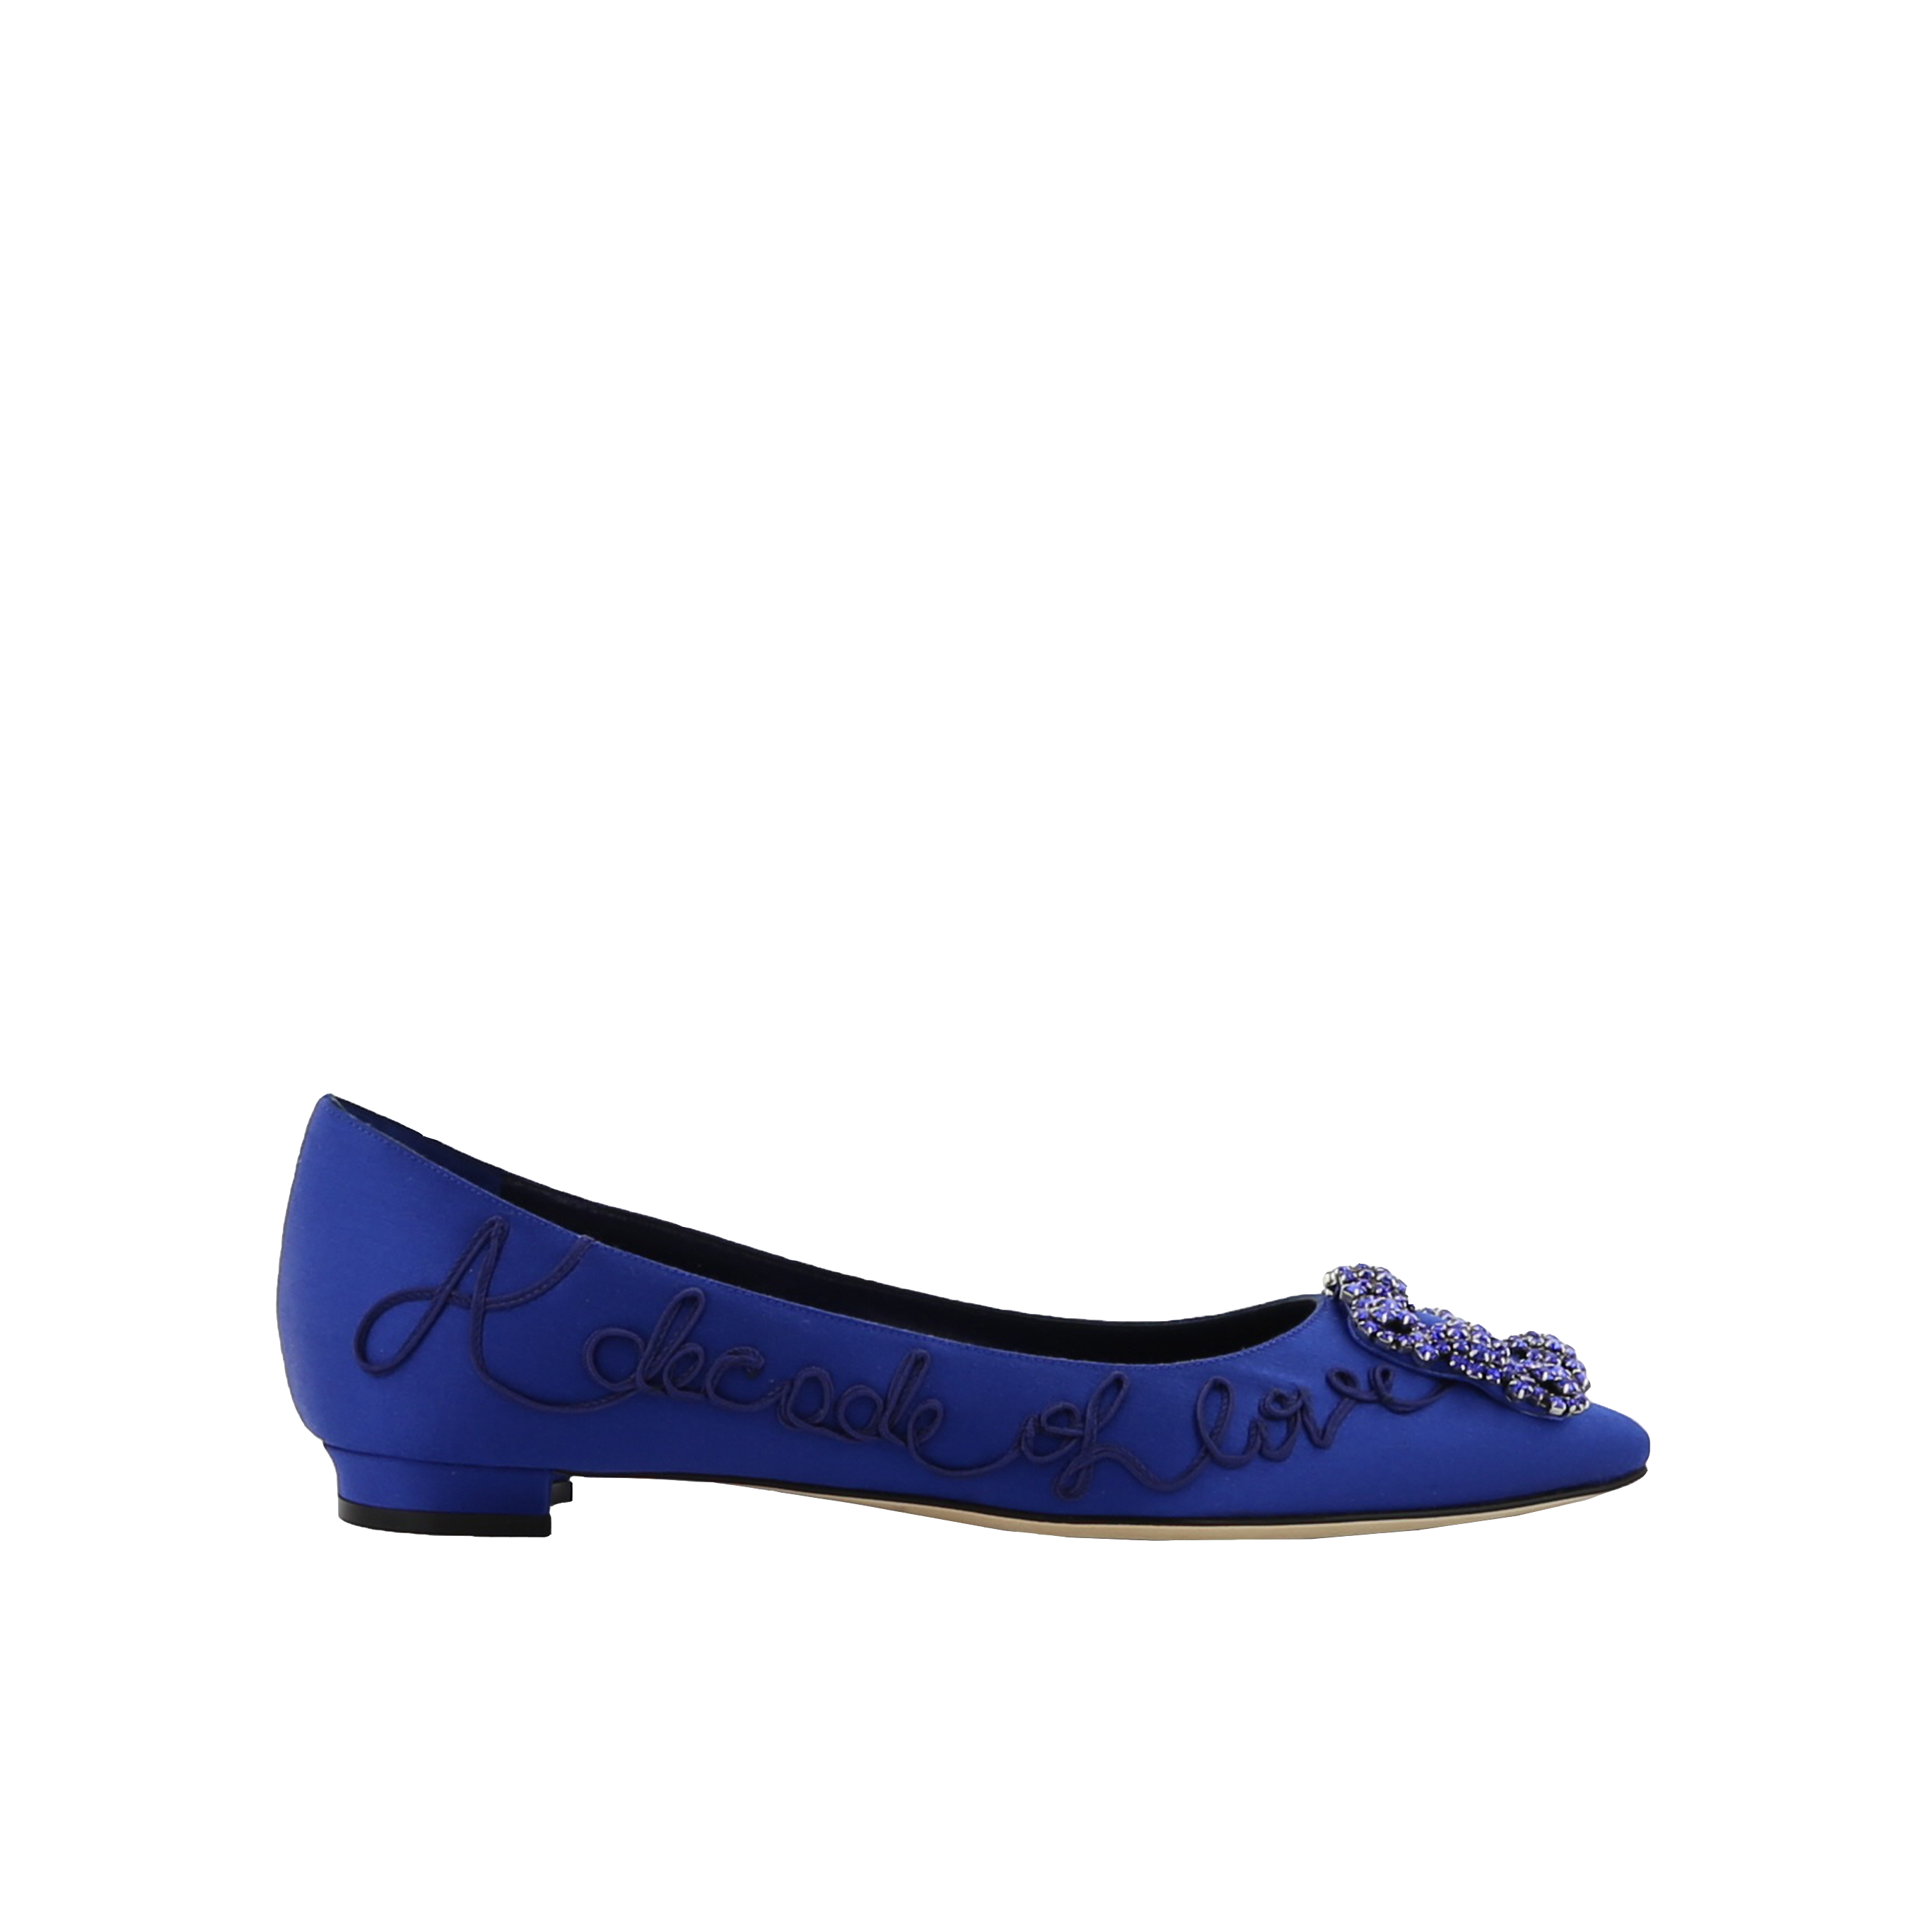 Blue Embroidered Satin Jewel Buckle Flats